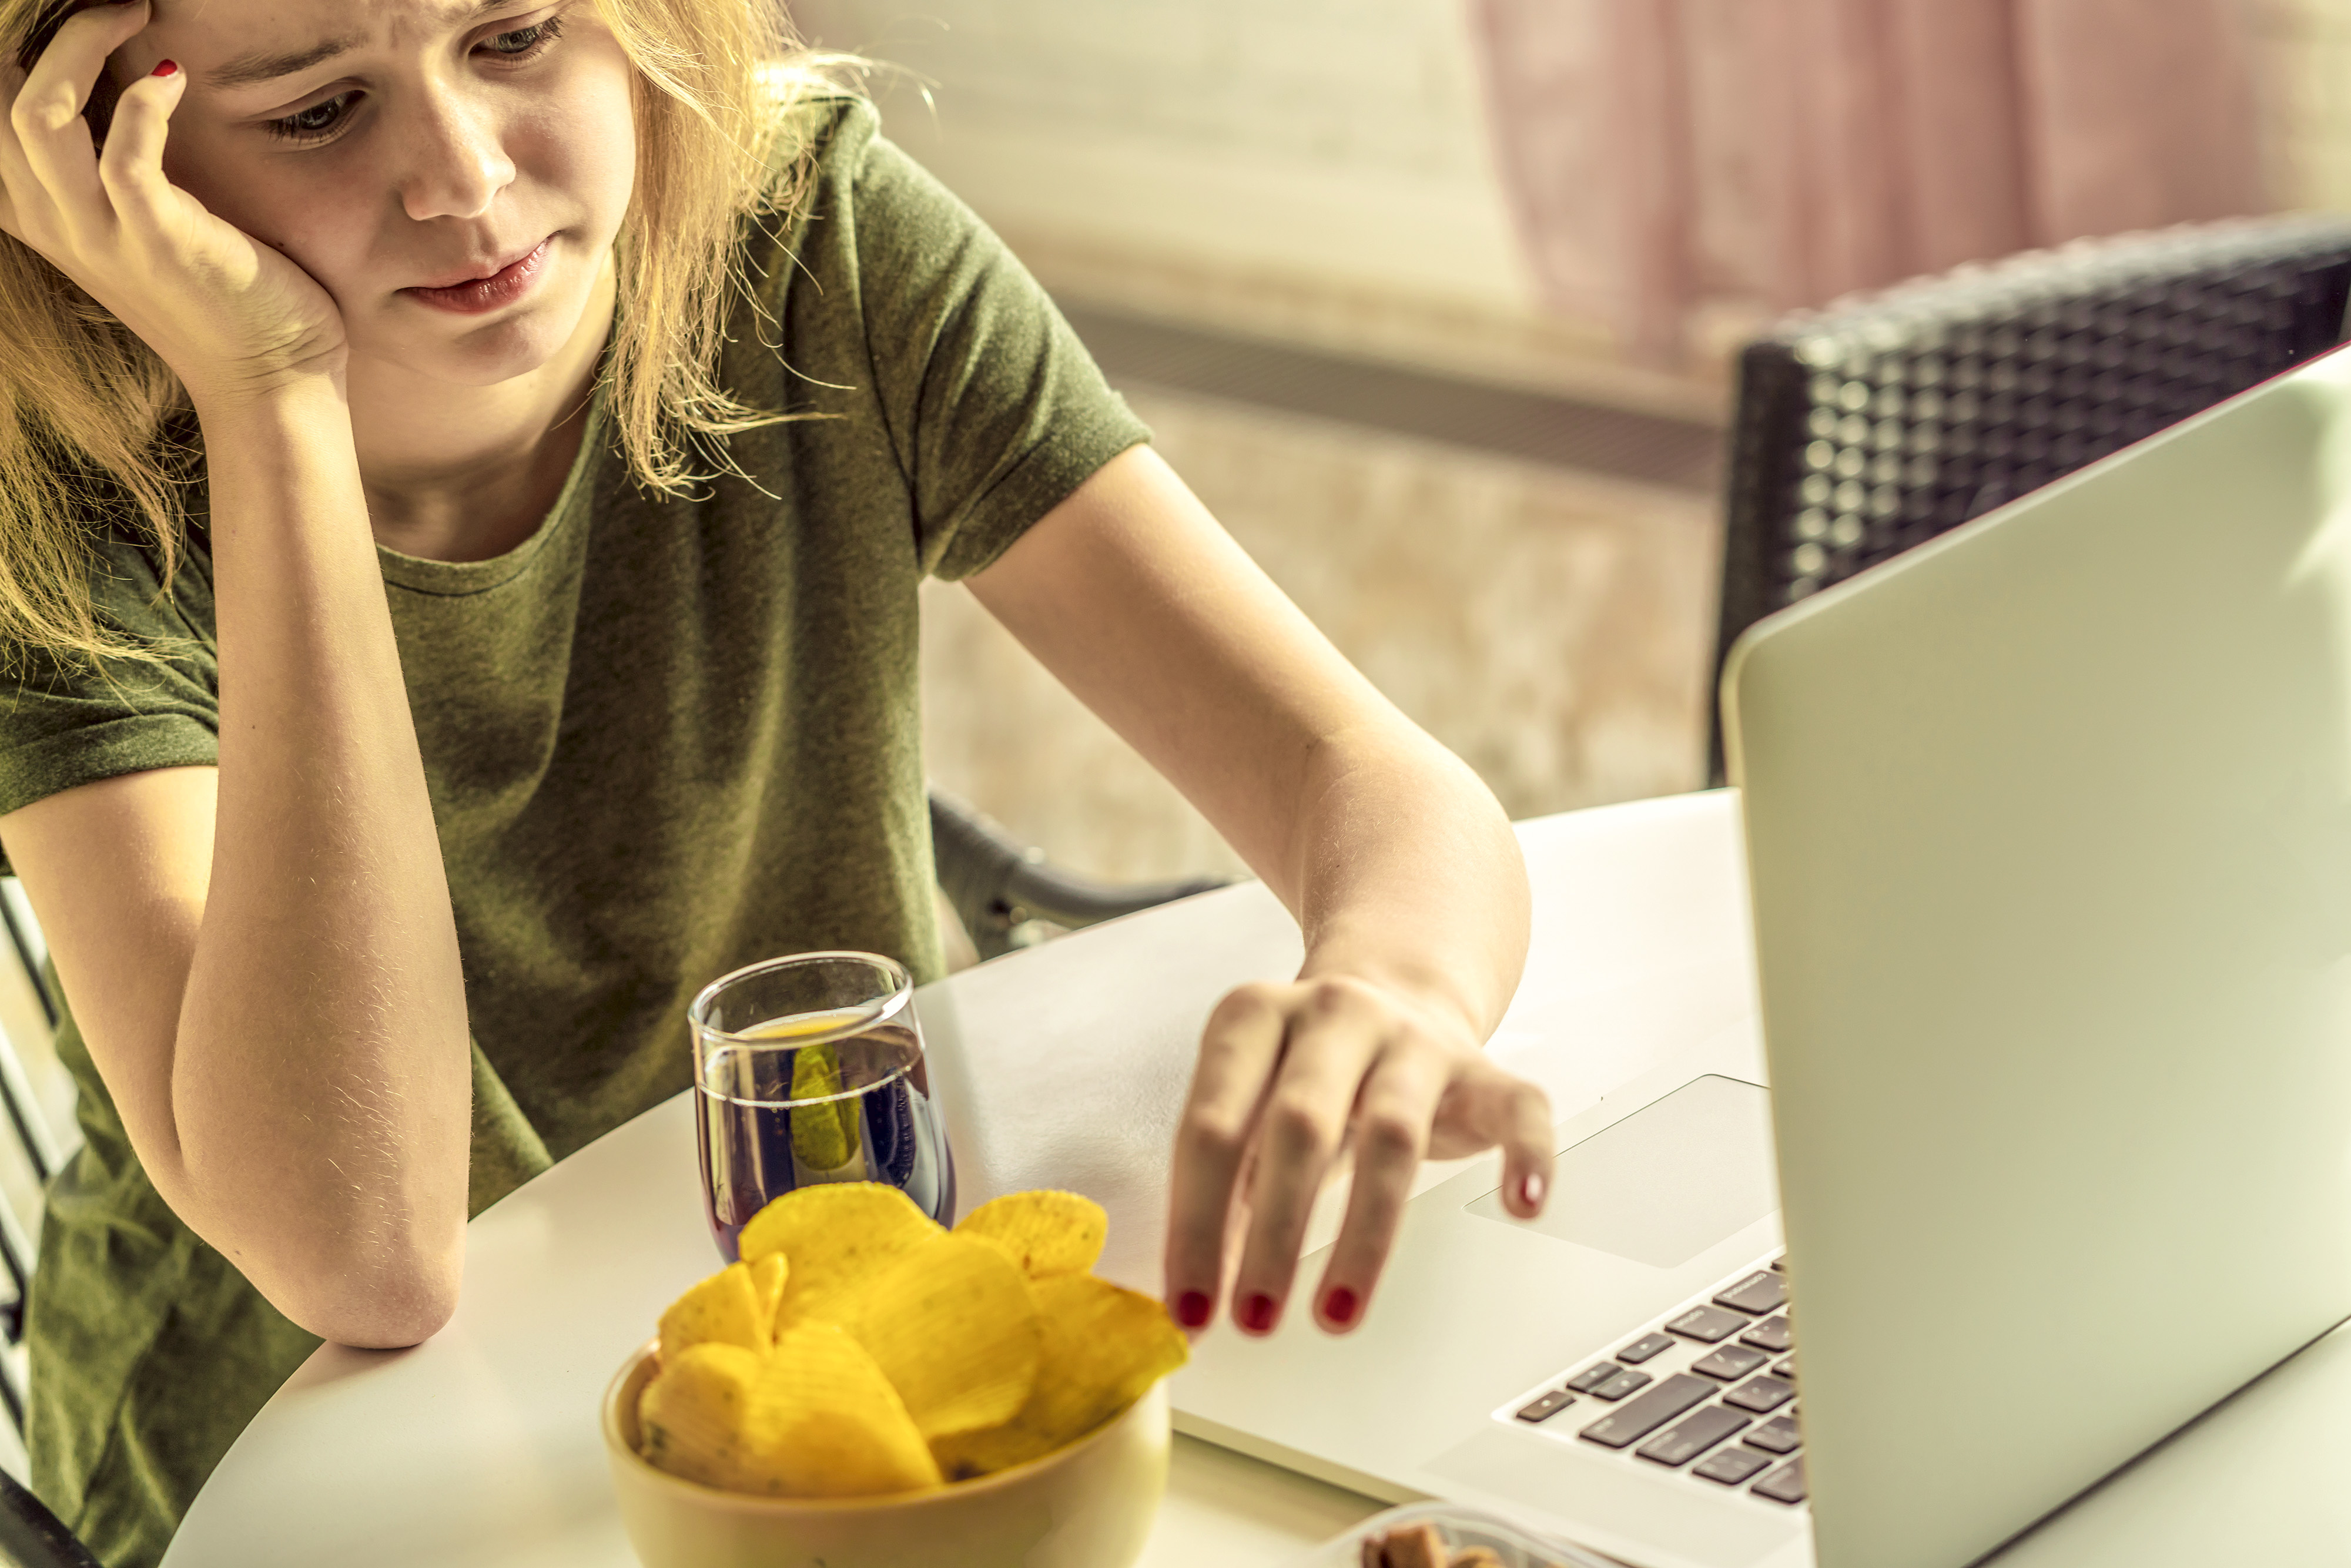 10 Things to Do Instead of Snacking at Your Desk